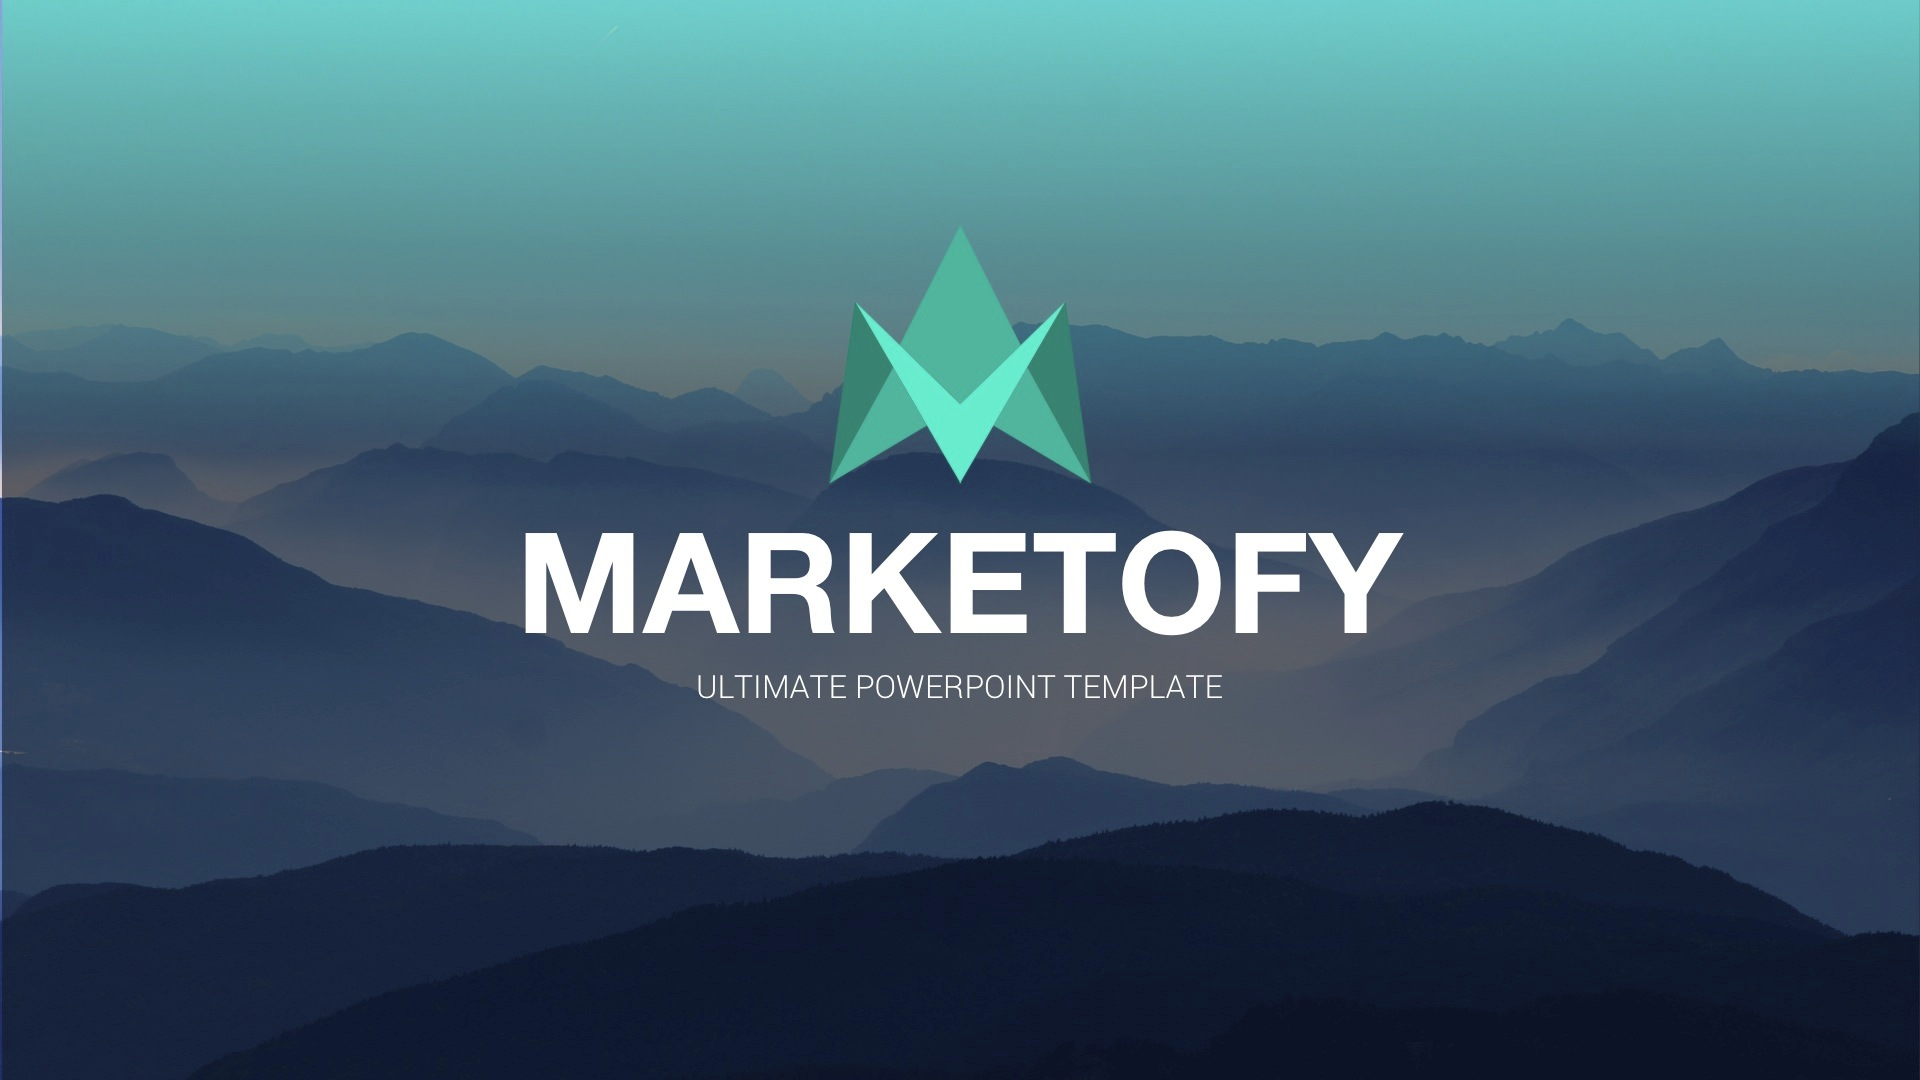 Marketofy ultimate powerpoint template by slidefusion graphicriver marketofy v2 screenshotsslide001g maxwellsz